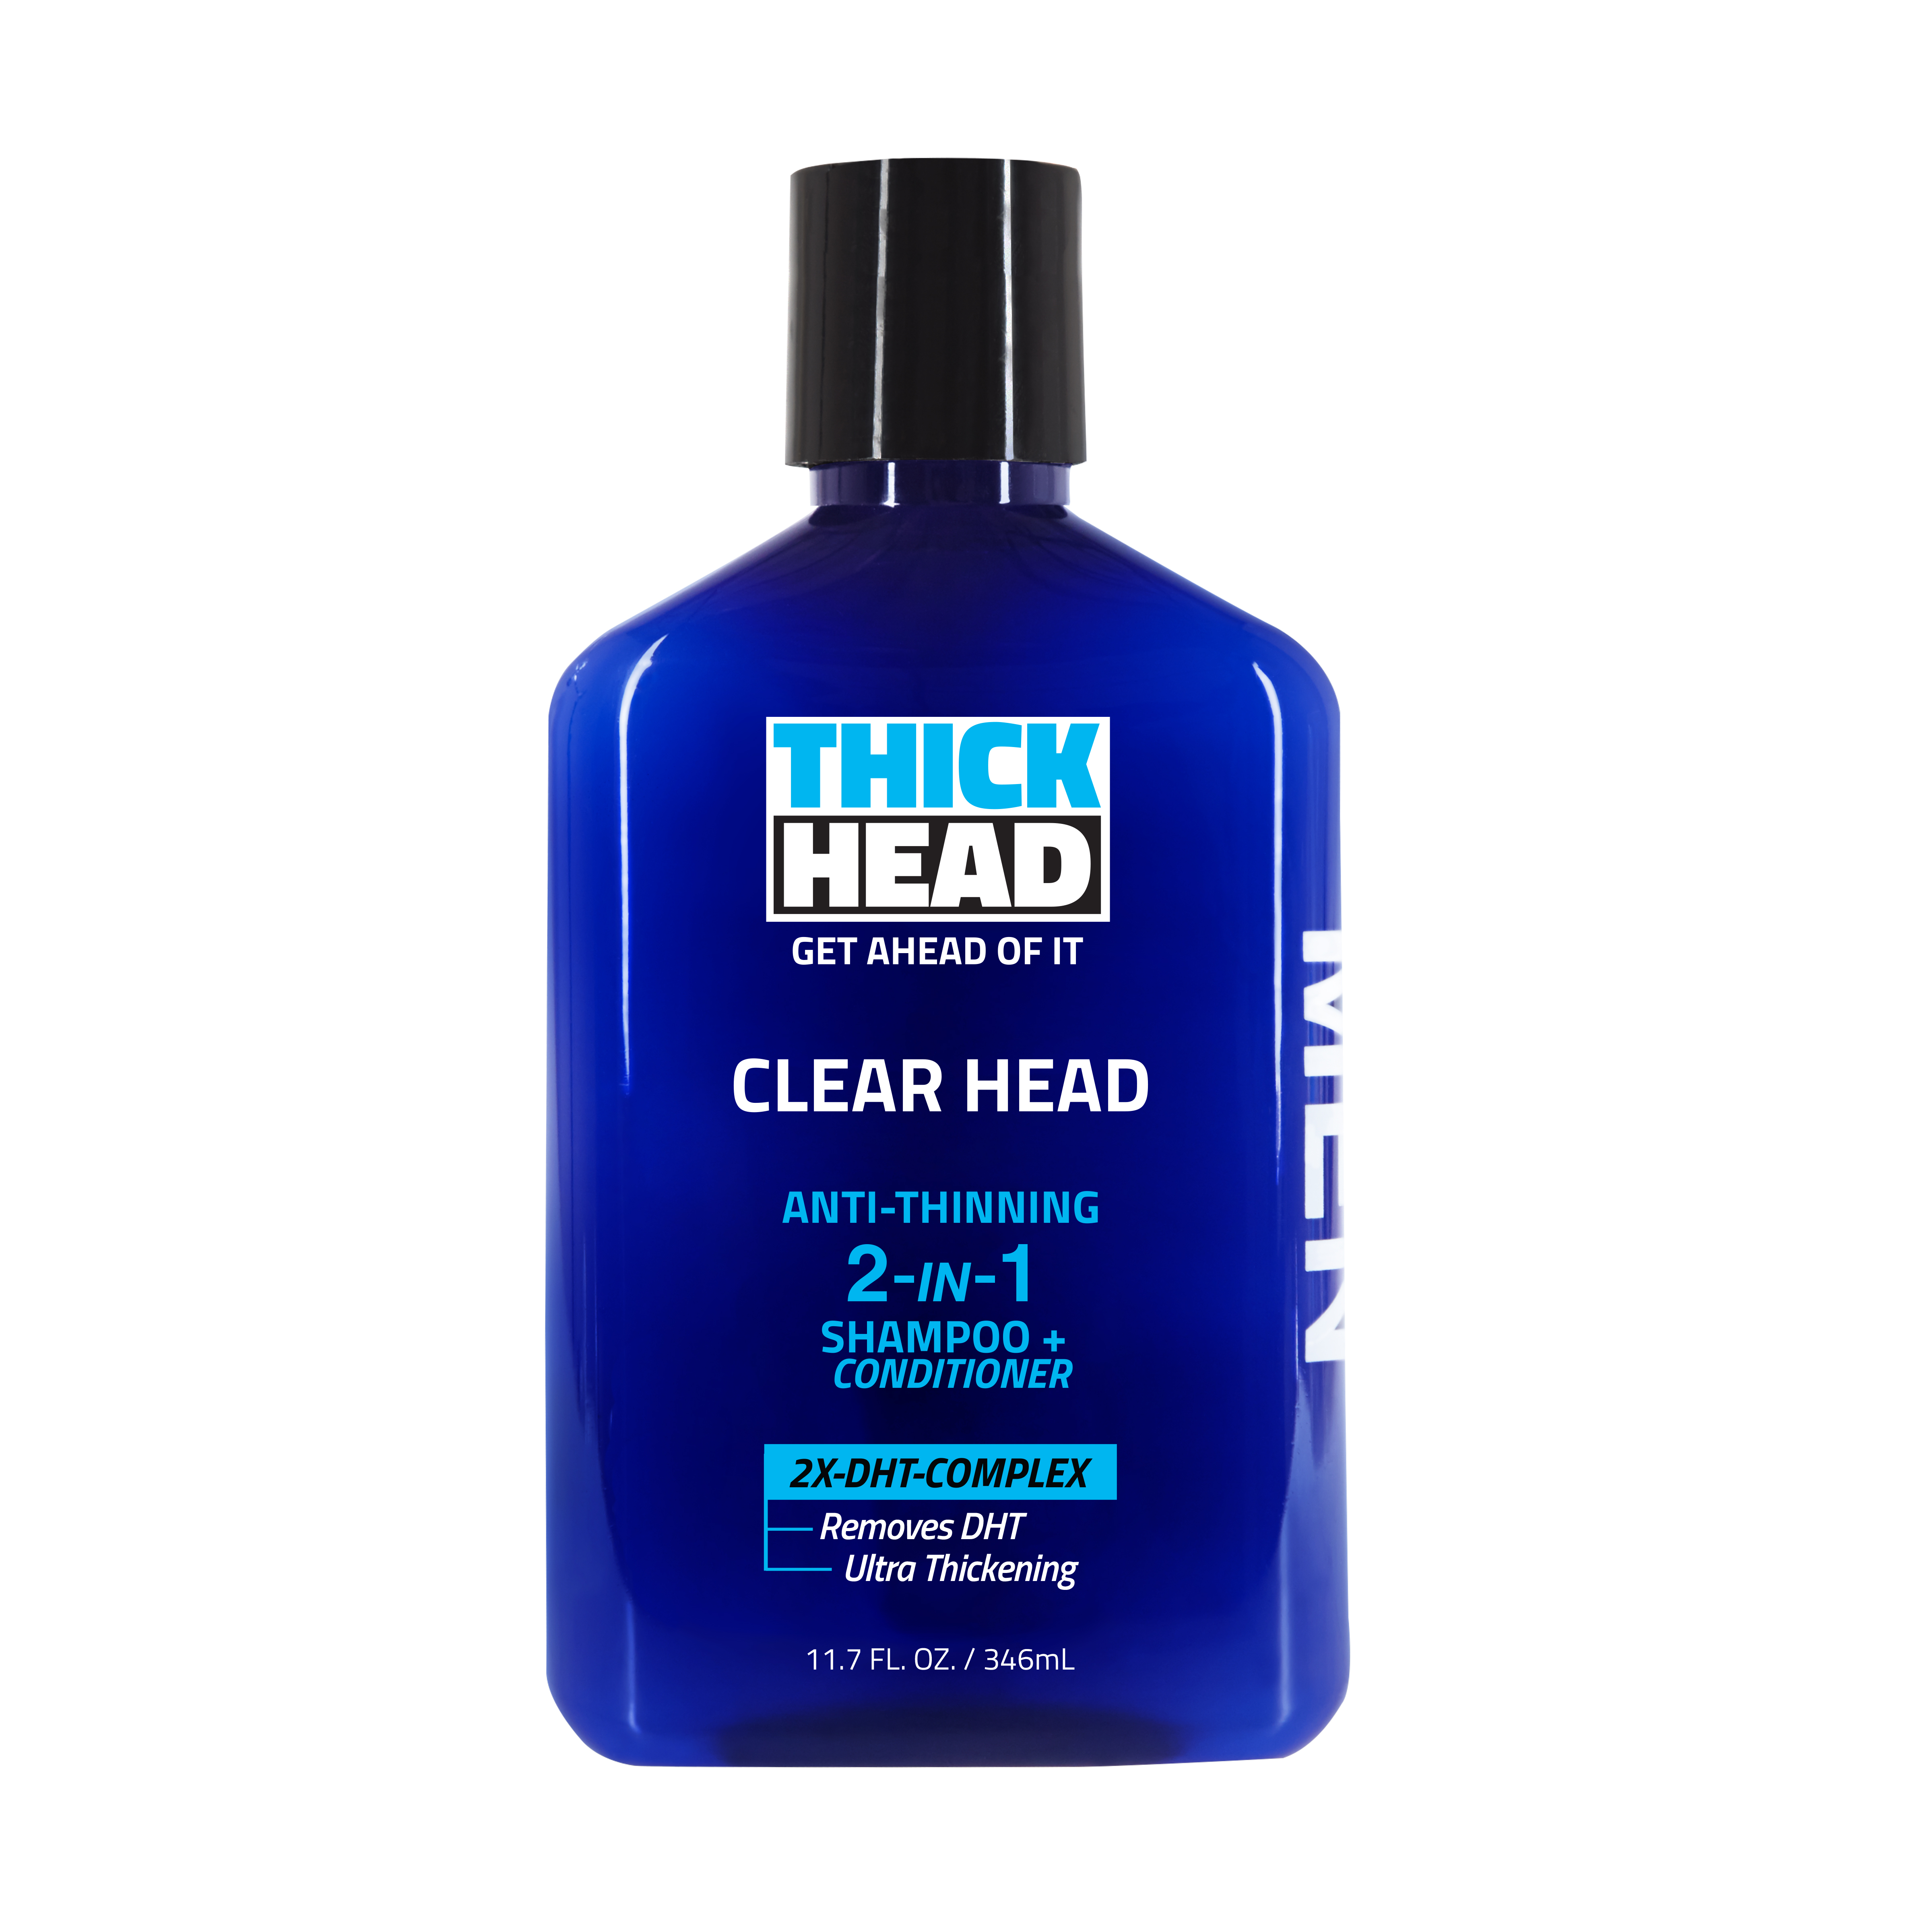 Clear Head is a combination shampoo and conditioner.